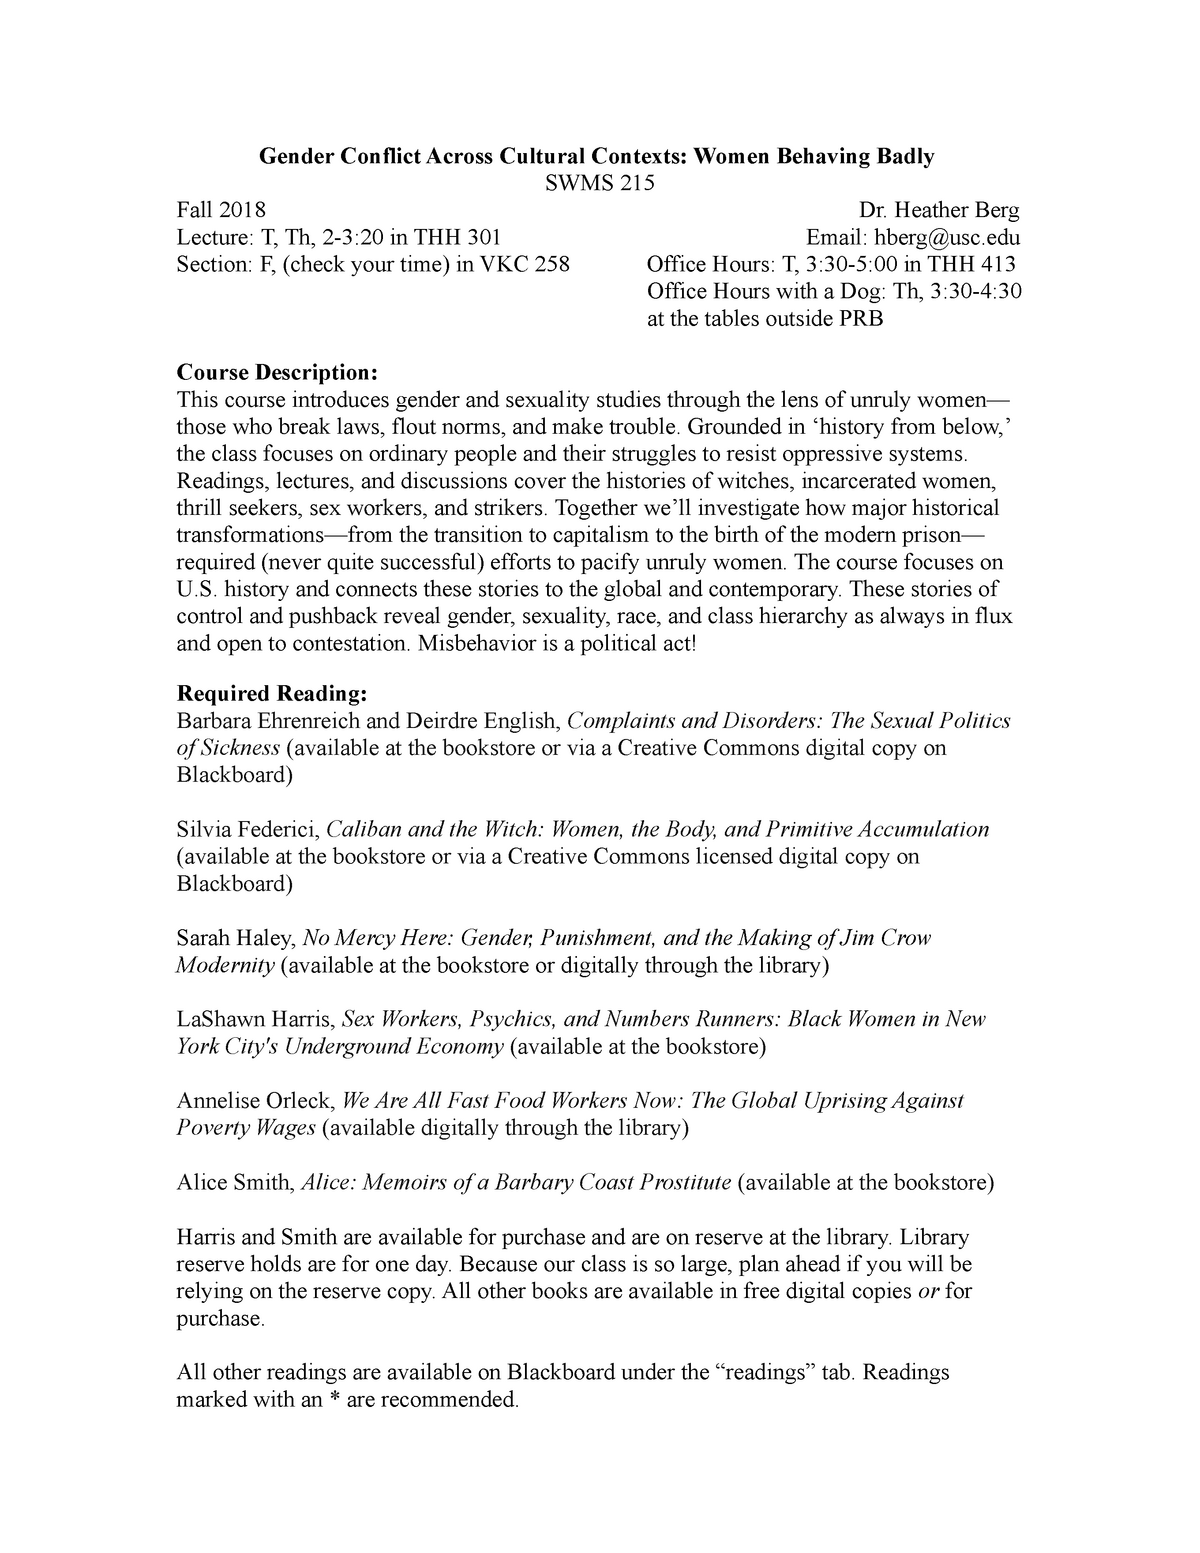 Syllabus, SWMS 215 Berg Final - SWMS215gp: Gender Conflict across